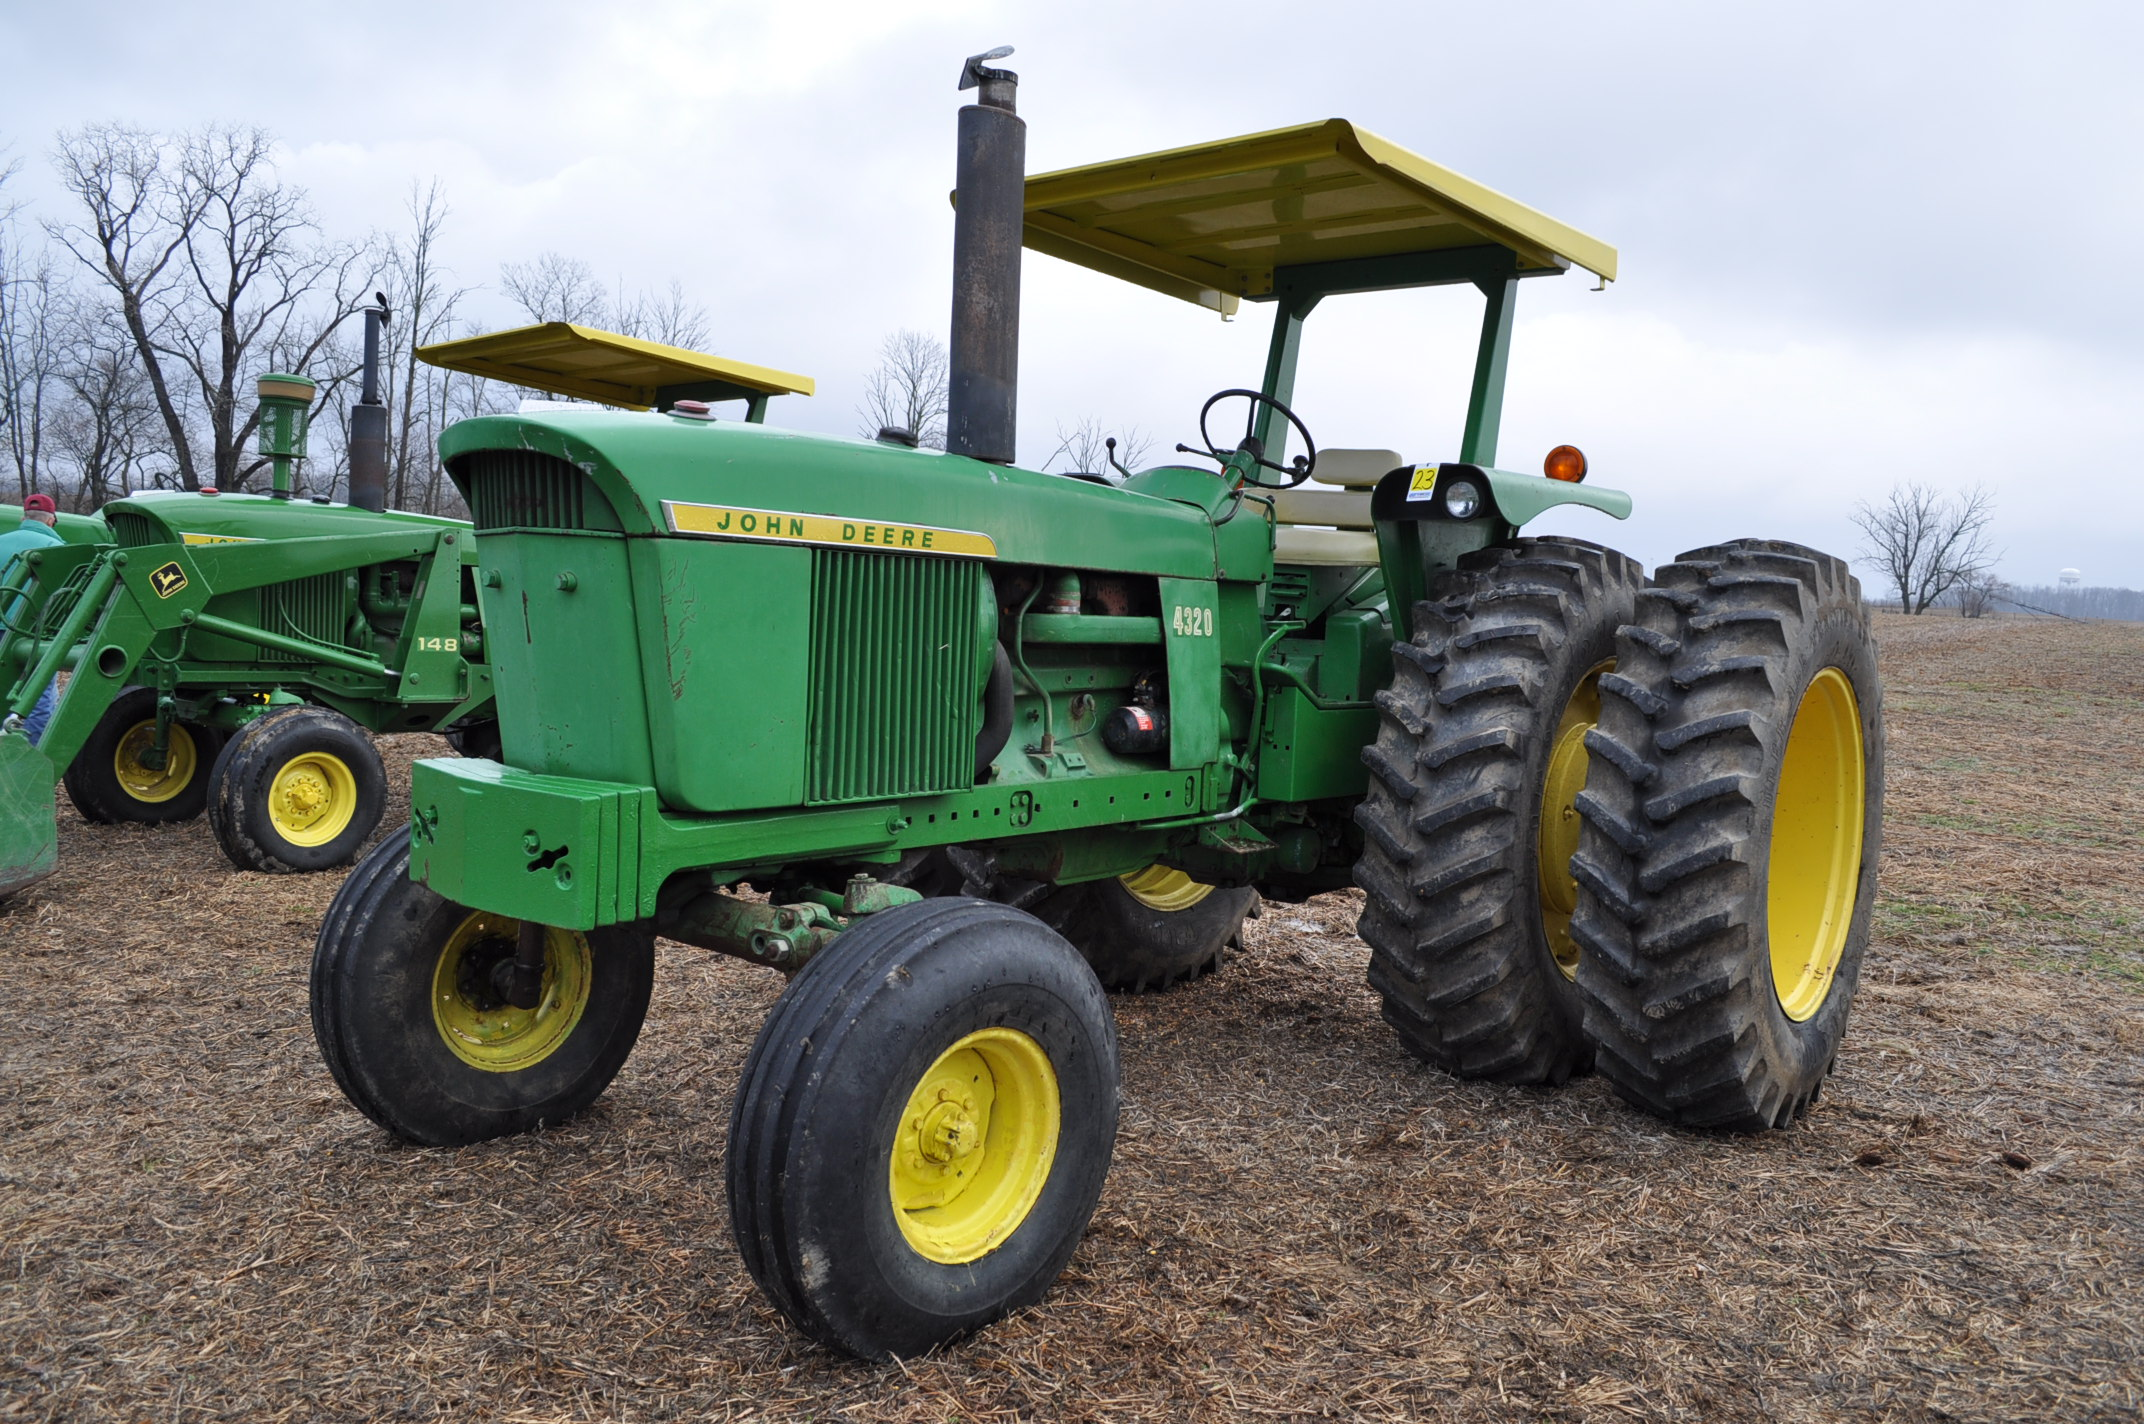 John Deere 4320 tractor, diesel, 18.4-38 duals, 10.00-16 wide front, Syncro, 2 hyd remotes, 540/1000